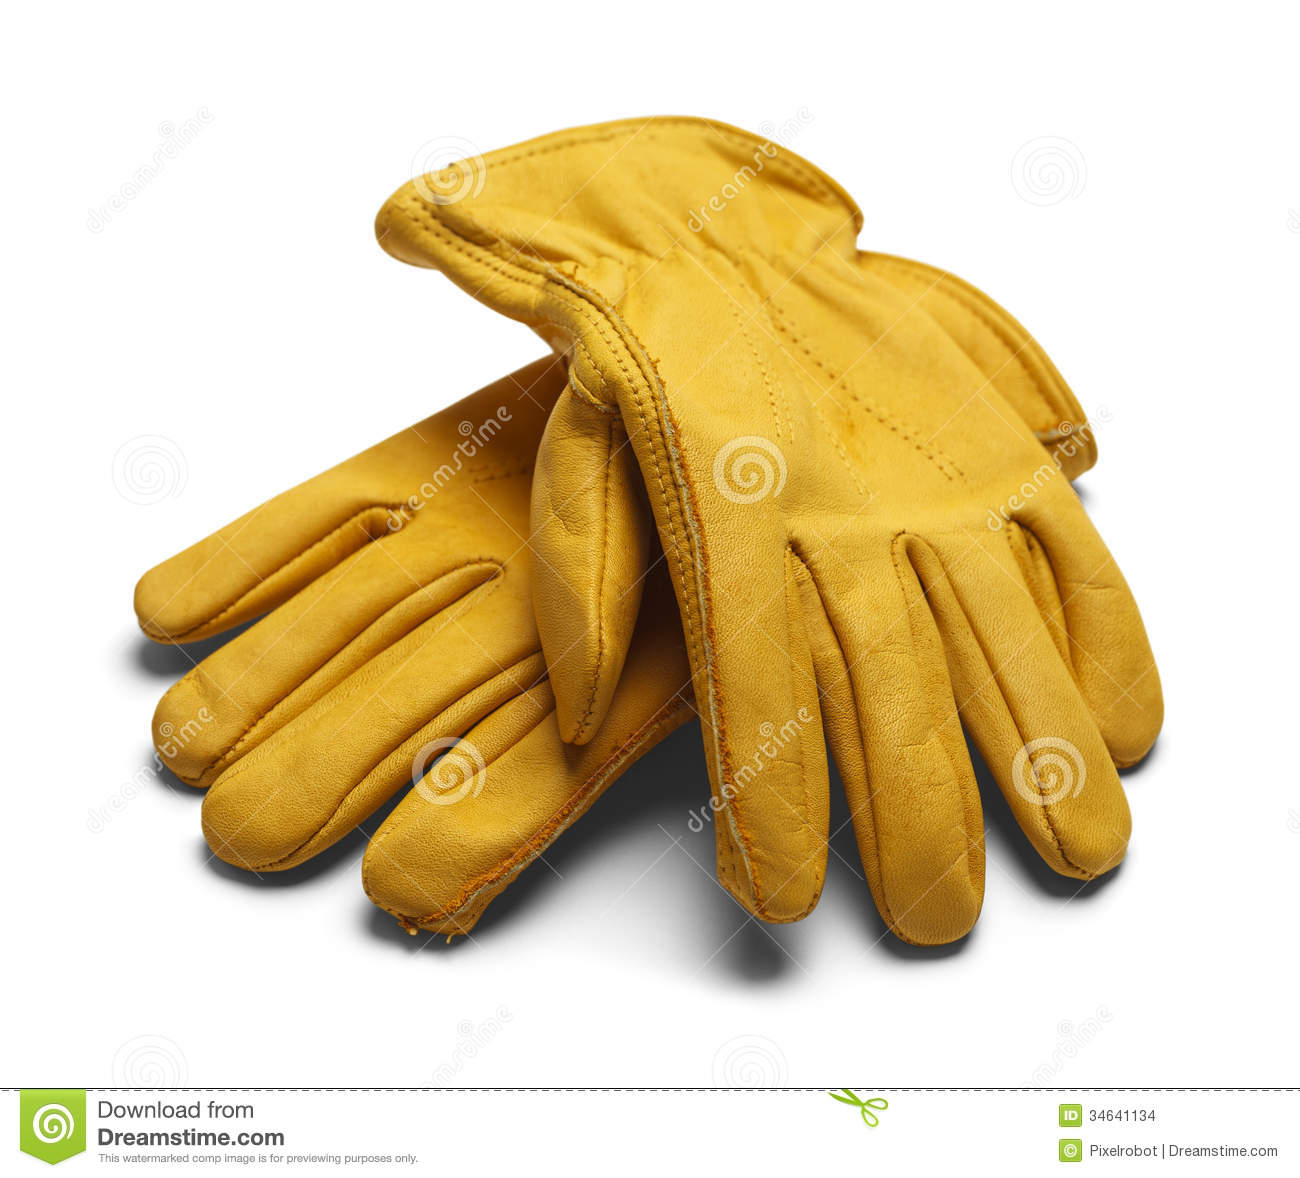 Insulated leather work gloves amazon - Yellow Leather Work Gloves Leather Work Gloves